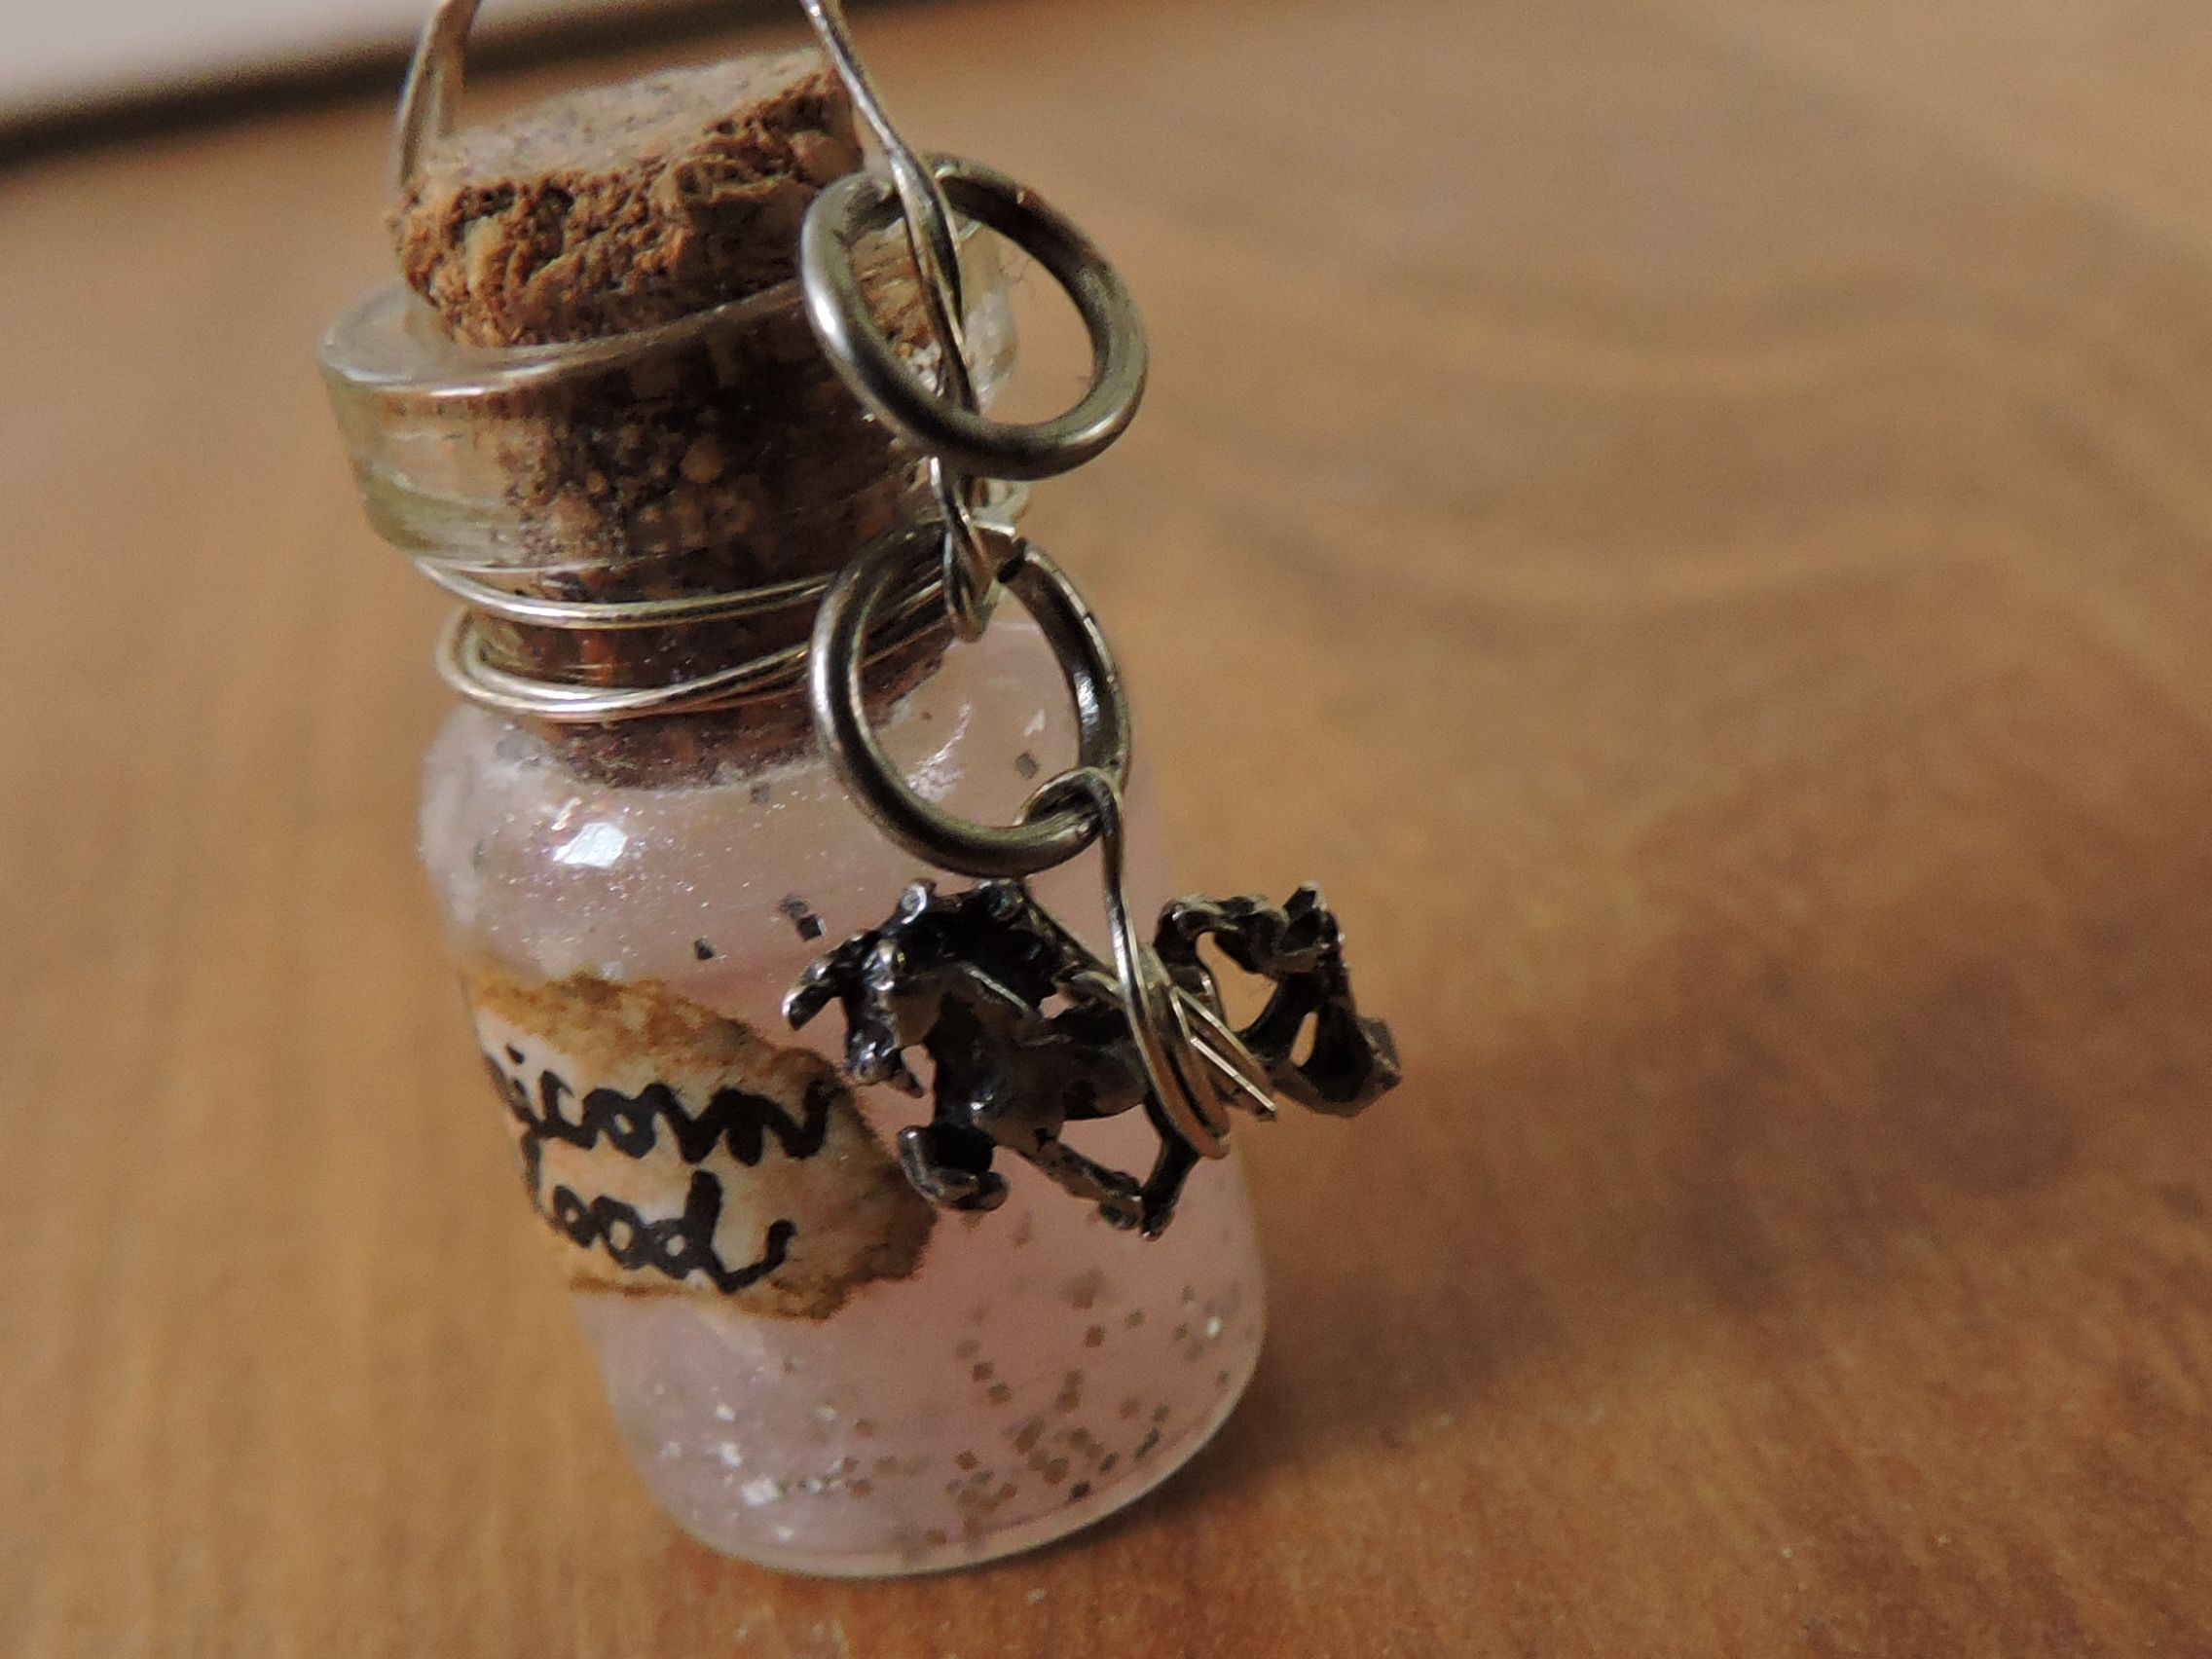 Unicorn Blood--Bottle charm pendant using small glass bottle with glitter and colored glue inside of it, and a silver unicorn charm attached to it.